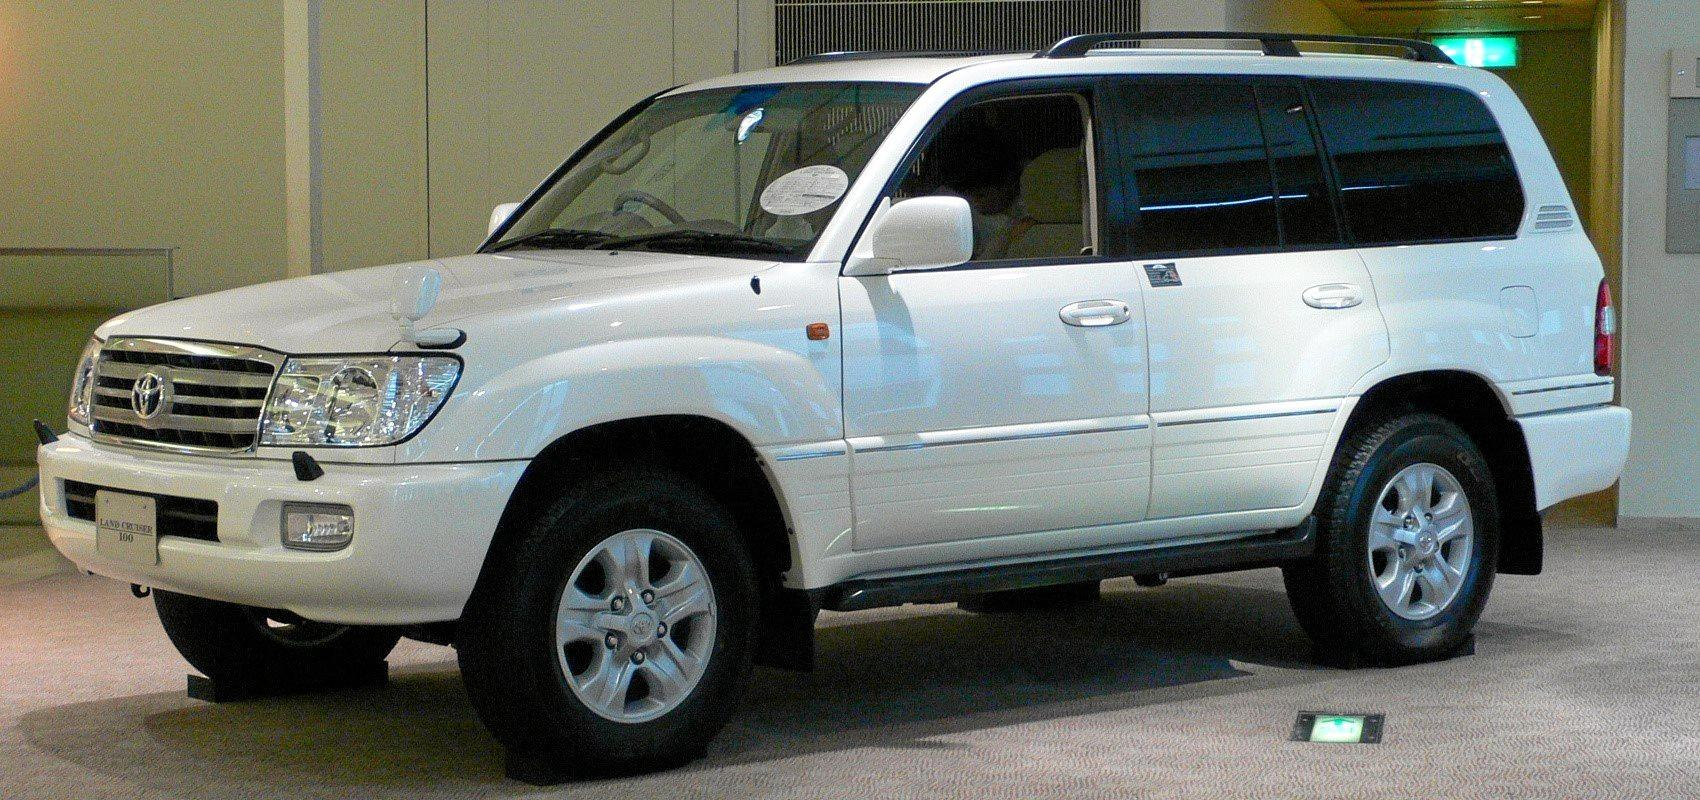 Police are looking for information about the owner of a vehicle, that is the same make as the car pictured.